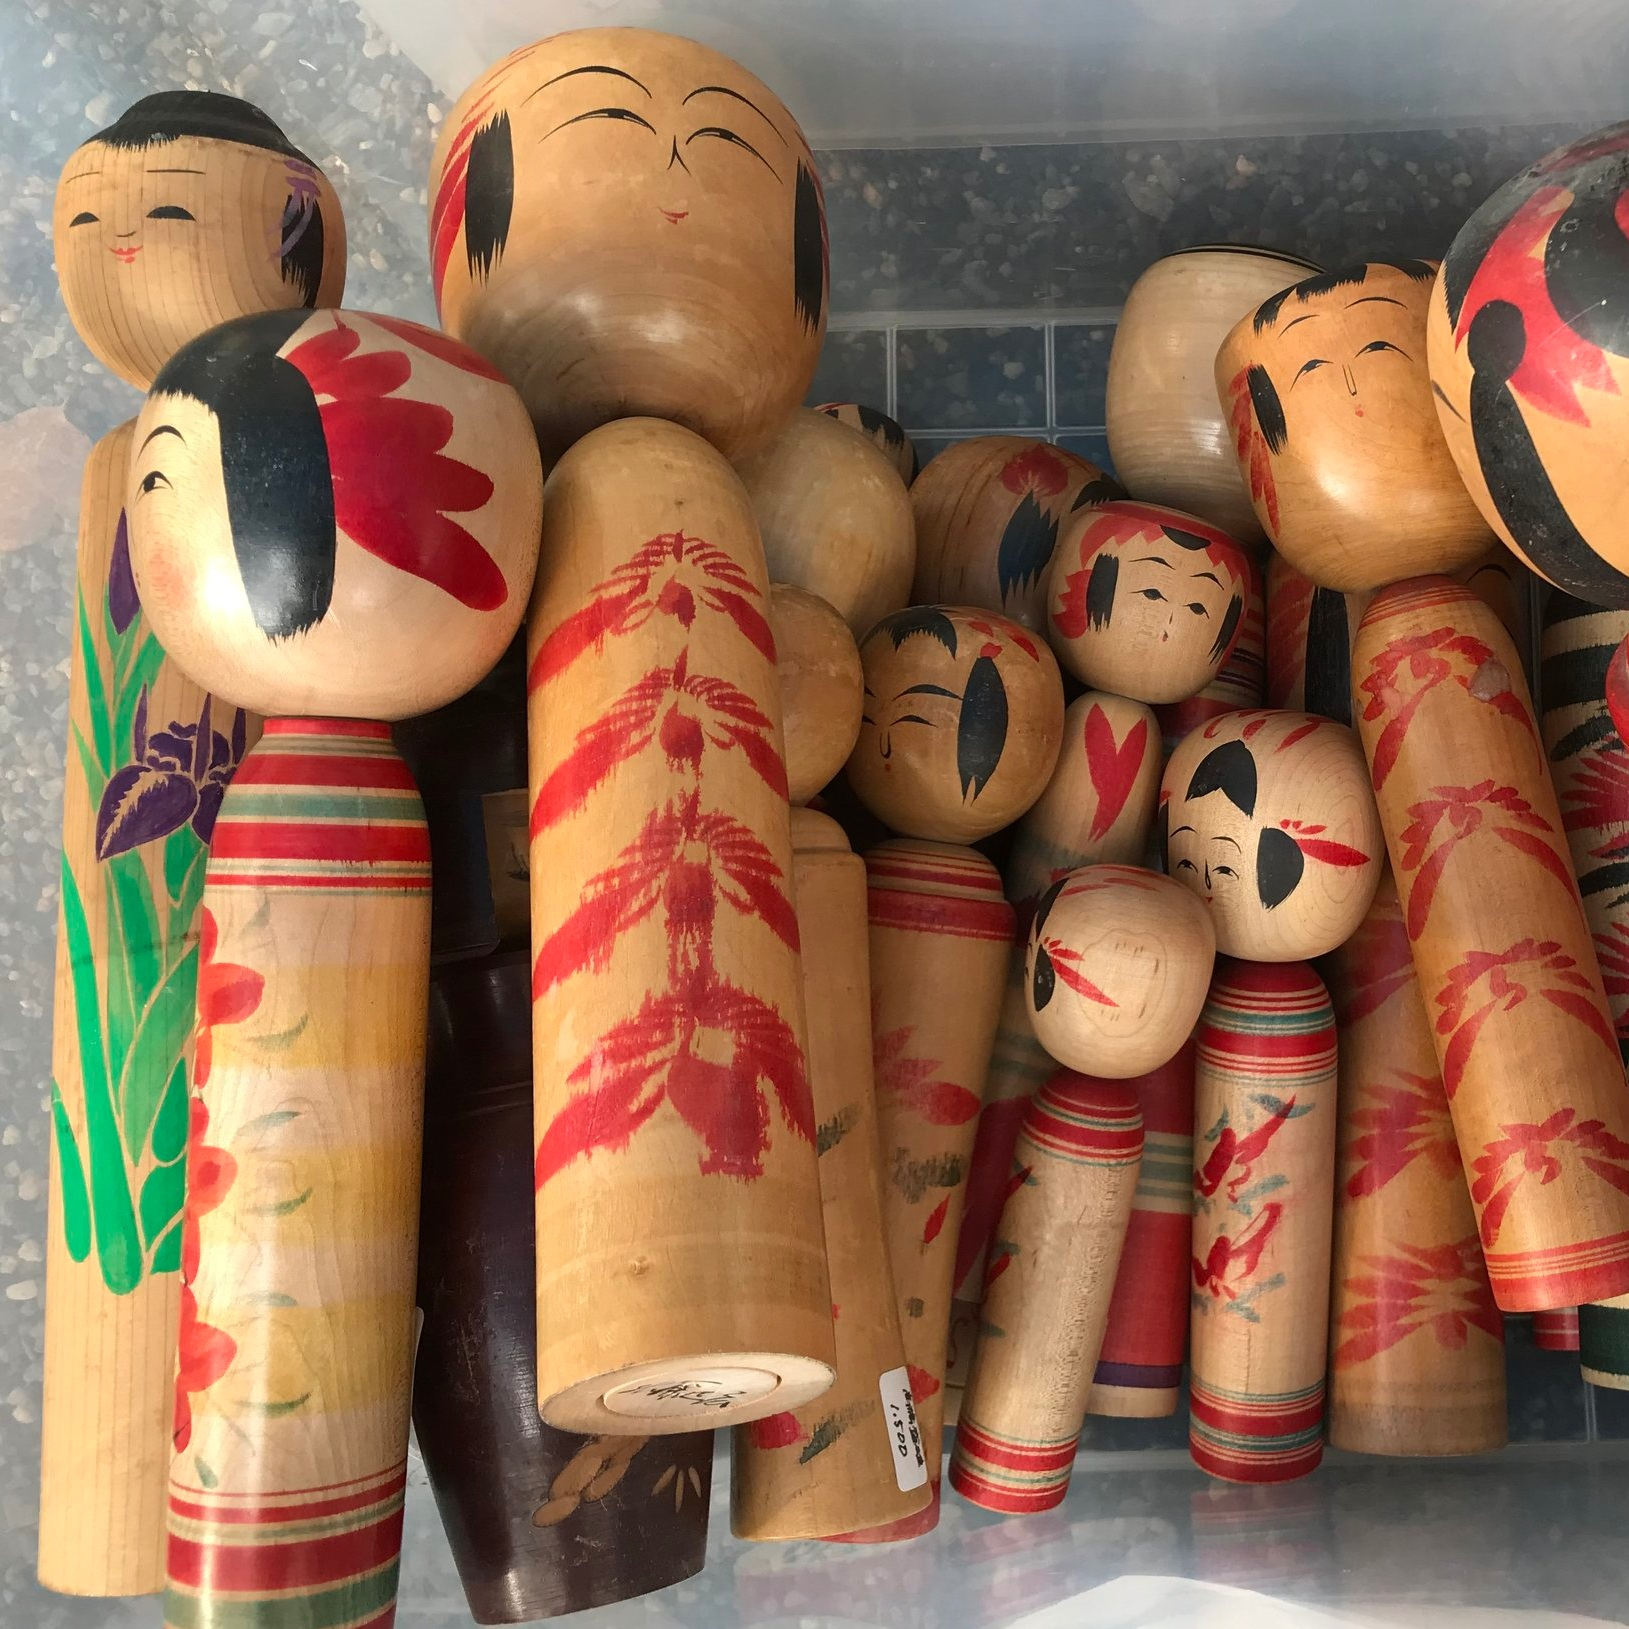 These wooden dolls were for sale at the Japanese Market - I mean who could resist?